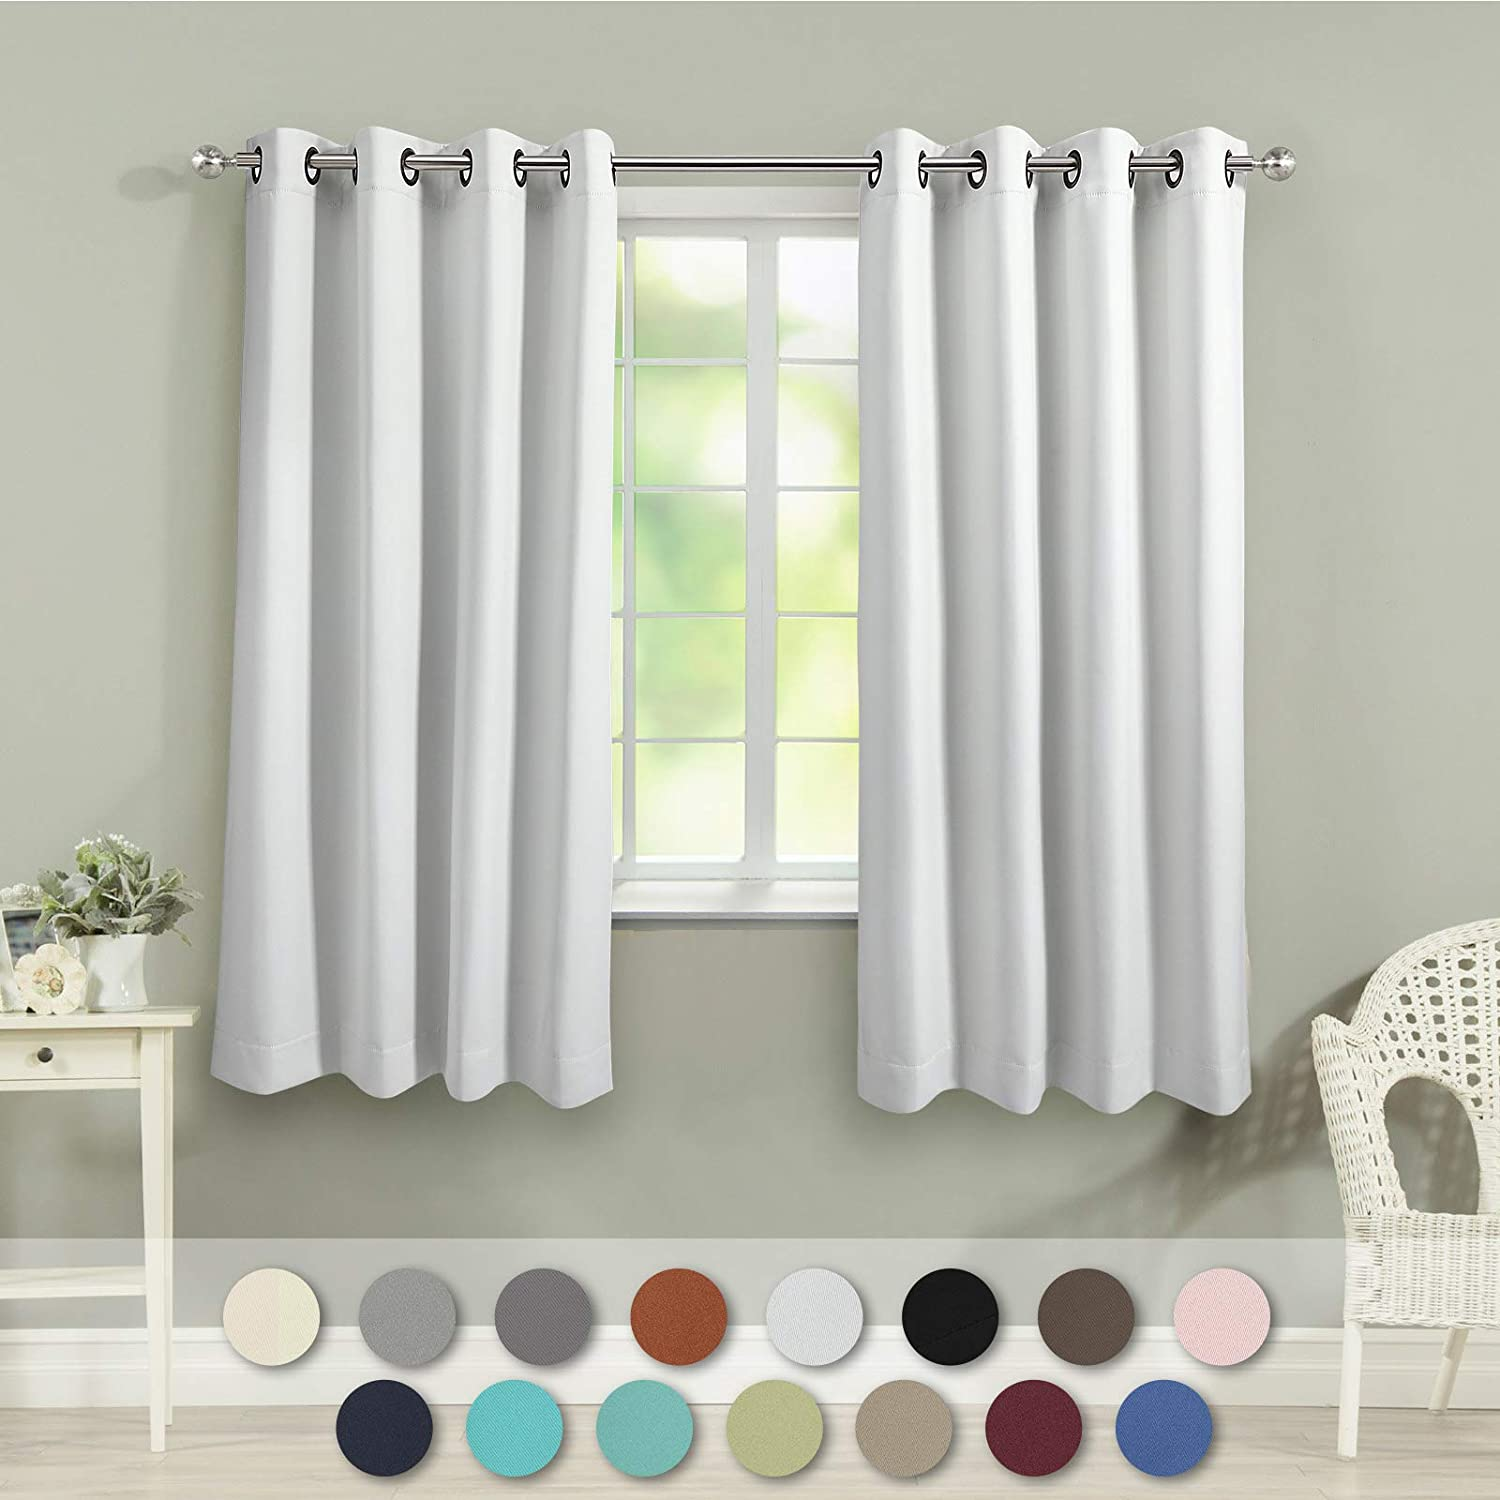 VEEYOO Blackout Curtains Panels for Bedroom - Thermal Insulated Grommet Blackout Curtains/Panels/Drapes for Living Room Christmas & Thanksgiving Decor(2 Panels, 52x63 inches, Greyish White)